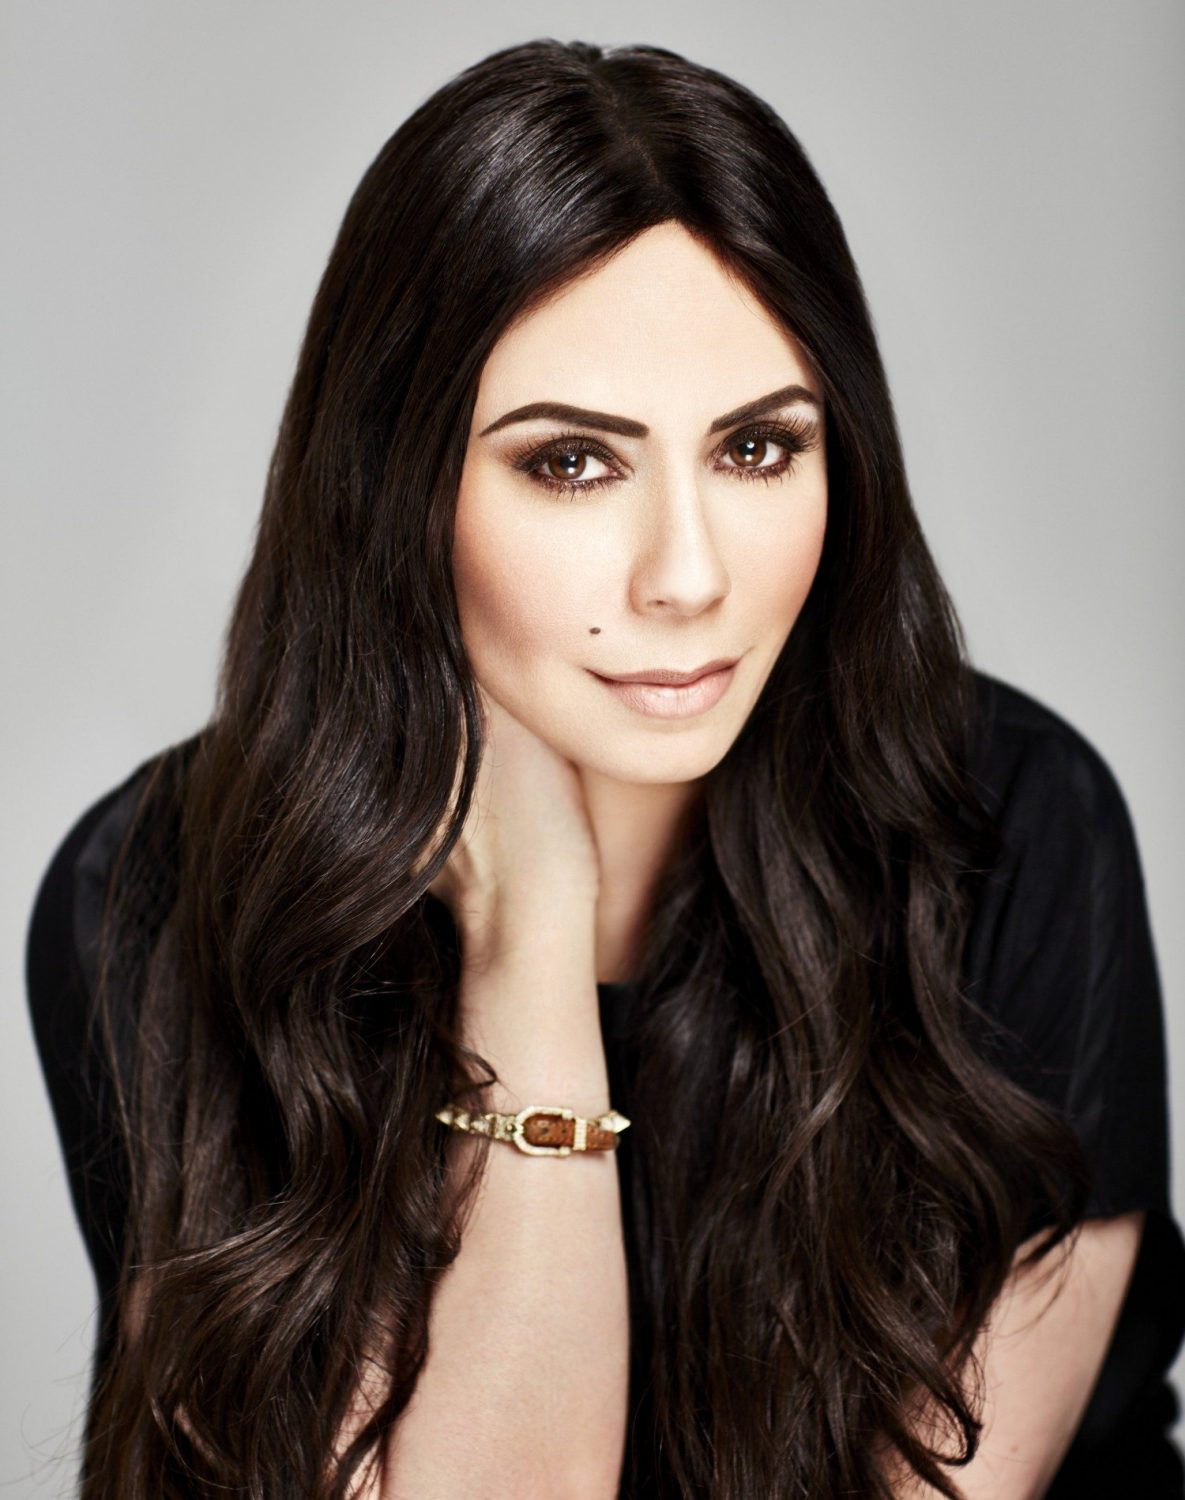 Smith & Cult founder Dineh Mohajer talks new fall products, New York and more